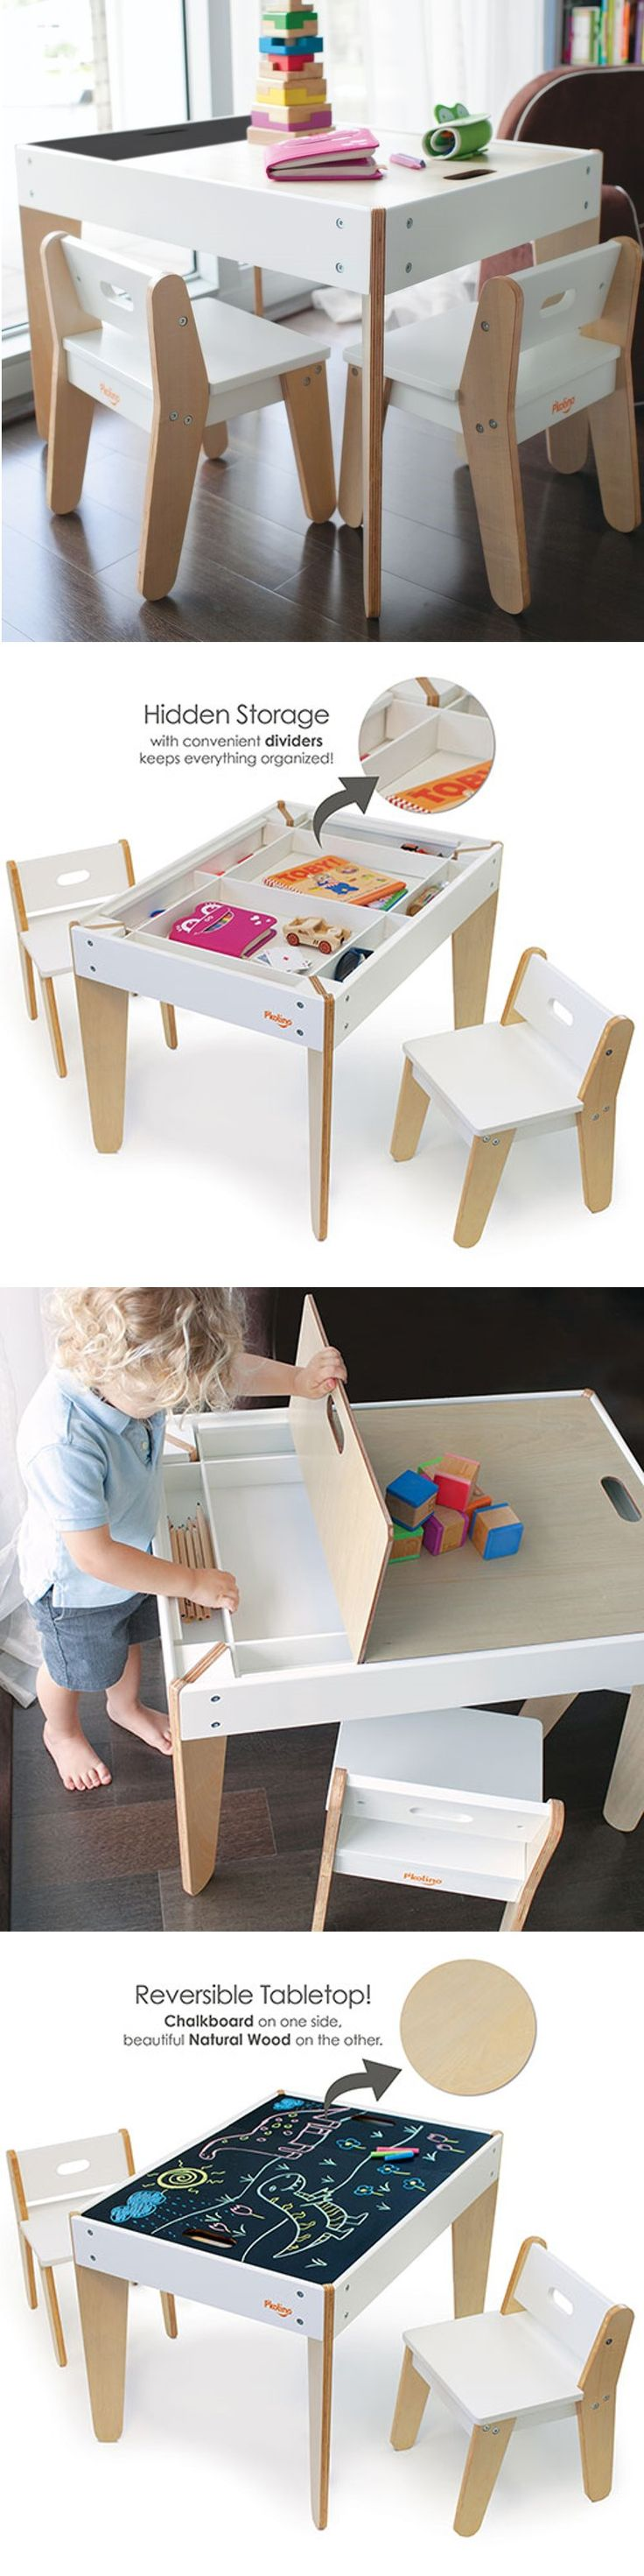 Best 25 Toddler play table ideas on Pinterest